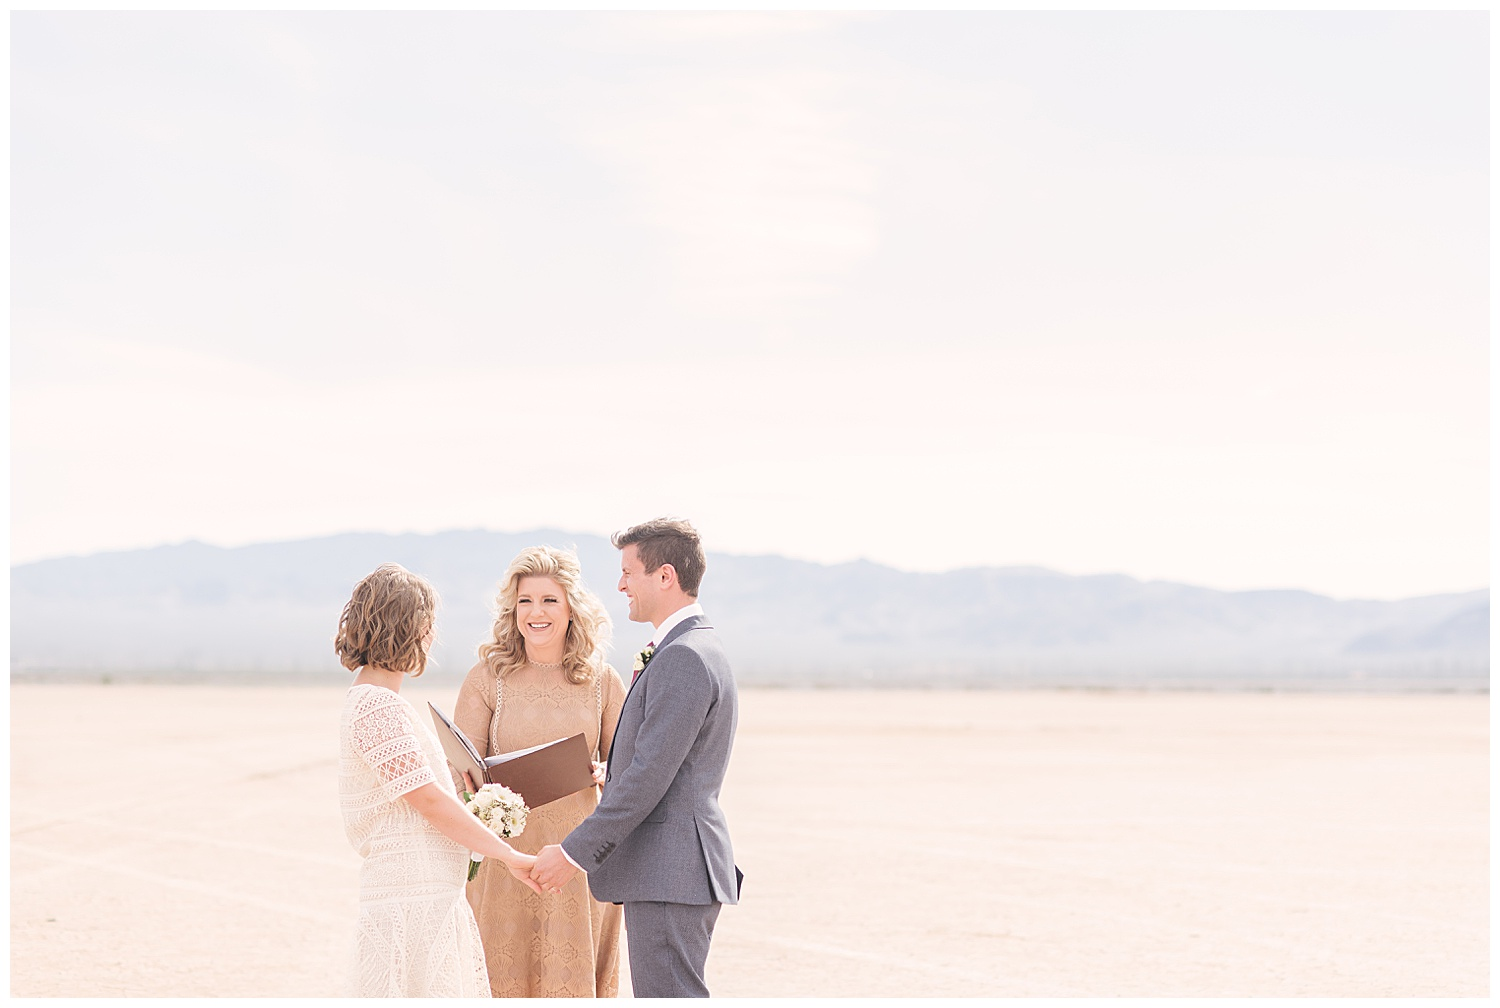 dry-lake-bed-las-vegas-elopement-photographer-02.jpg